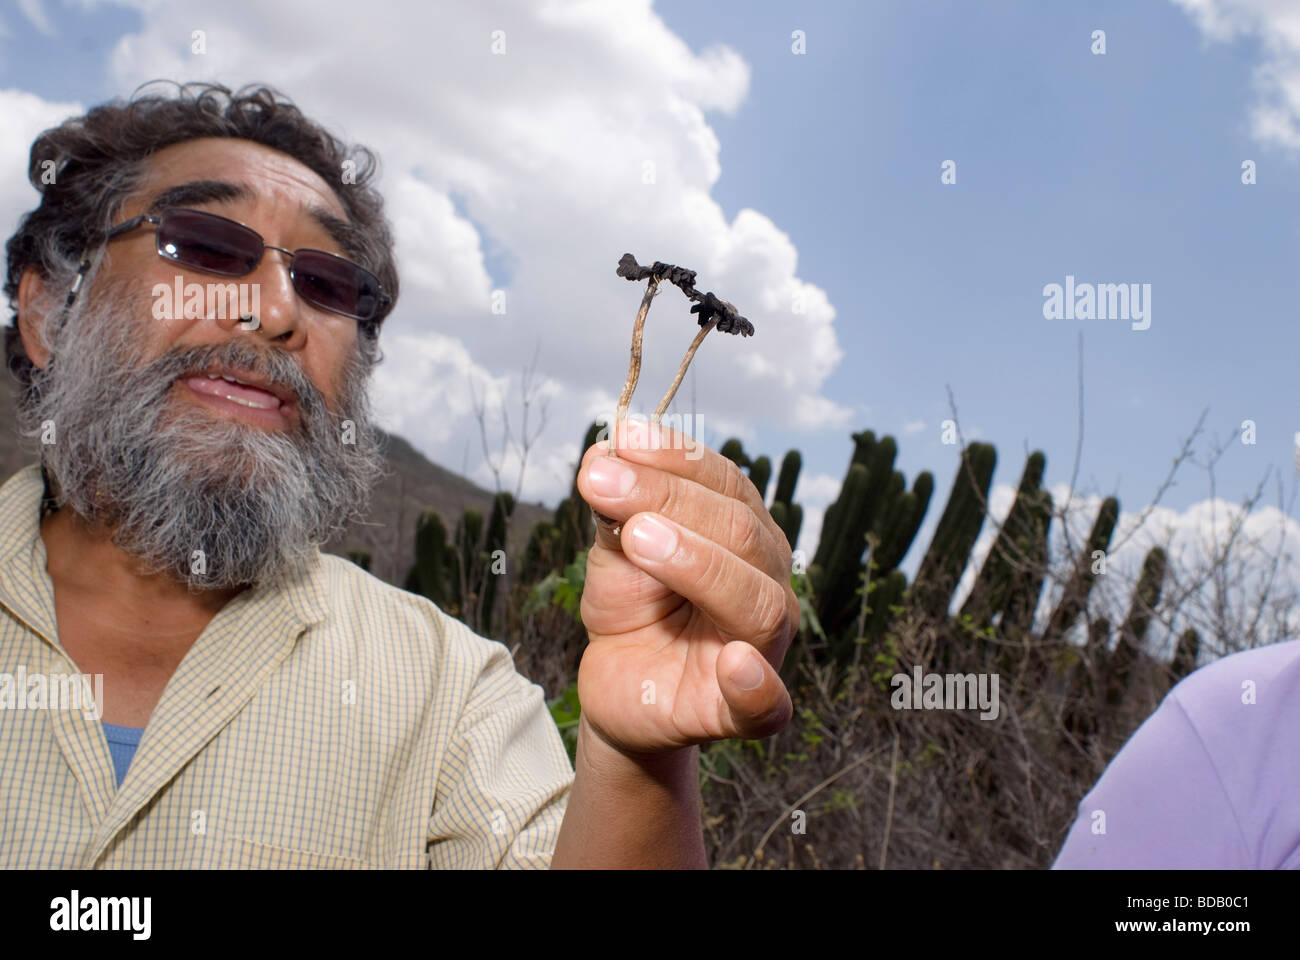 Traditional healer Laurencio López Nuñez holds up a psychotropic mushroom that grows in the area. - Stock Image